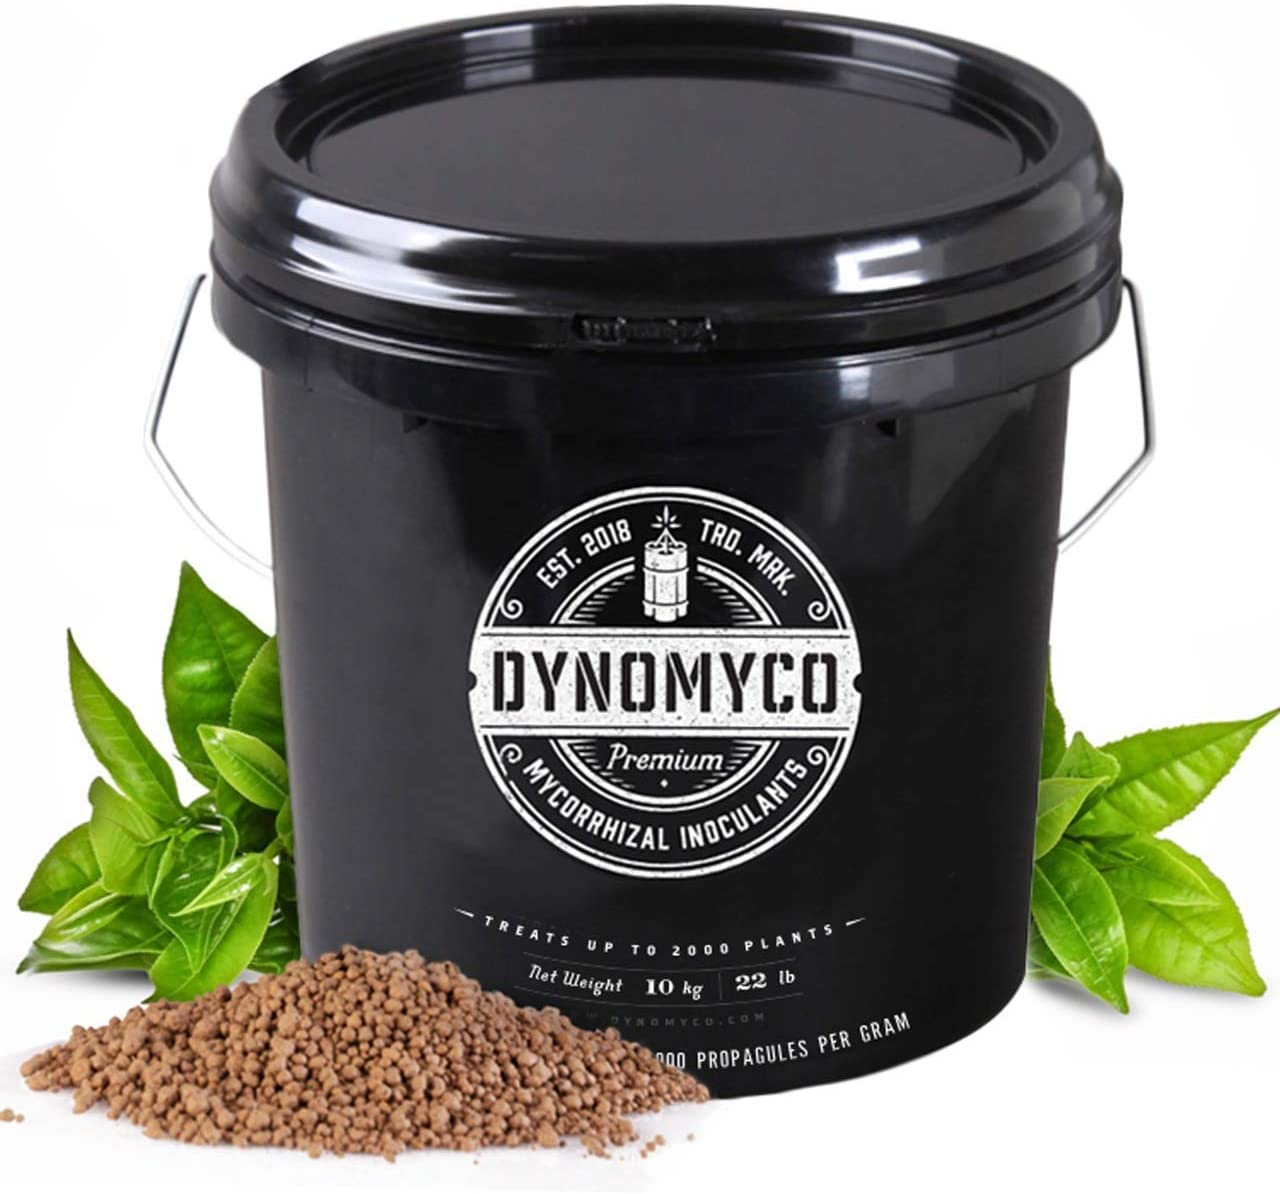 Mycorrhizal Inoculant by DYNOMYCO – High Performing Strains – Concentrated Formula – Improves Nutrient Uptake – Increases Plant Yields Enhances Resilience to Stress Saves Fertilizer (10 Kg / 22 LB)